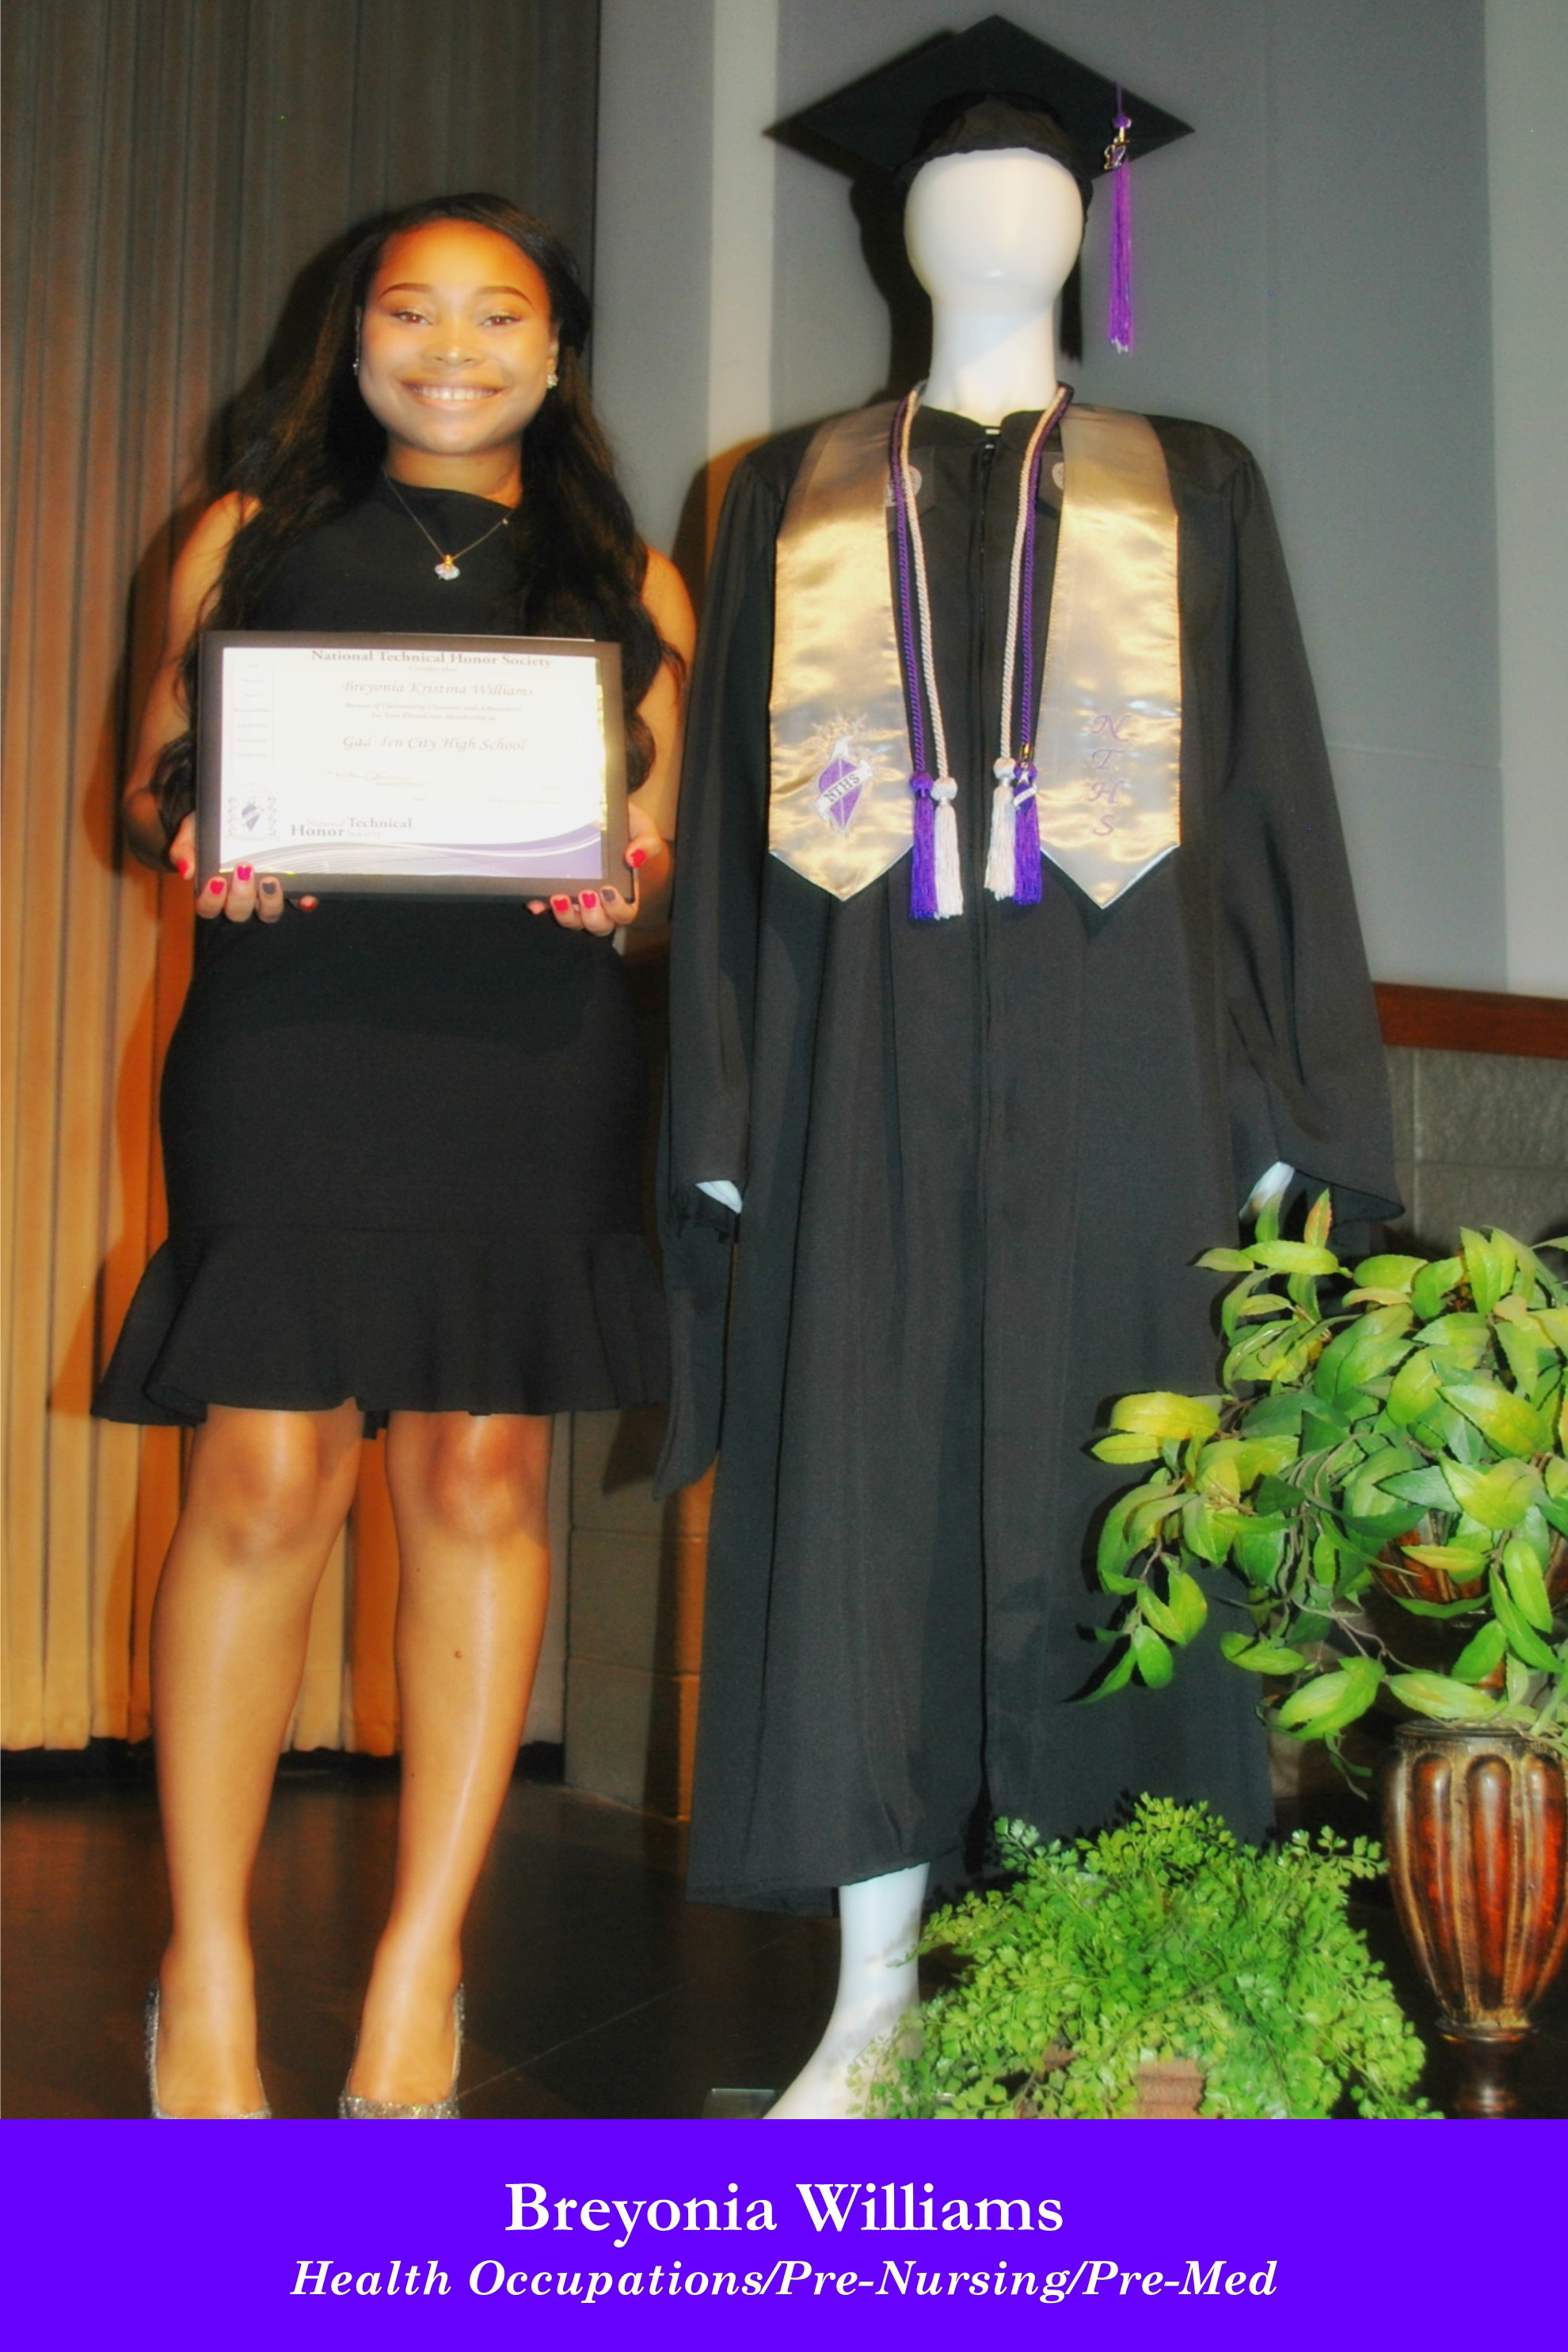 NTHS Induction Breyonia Williams